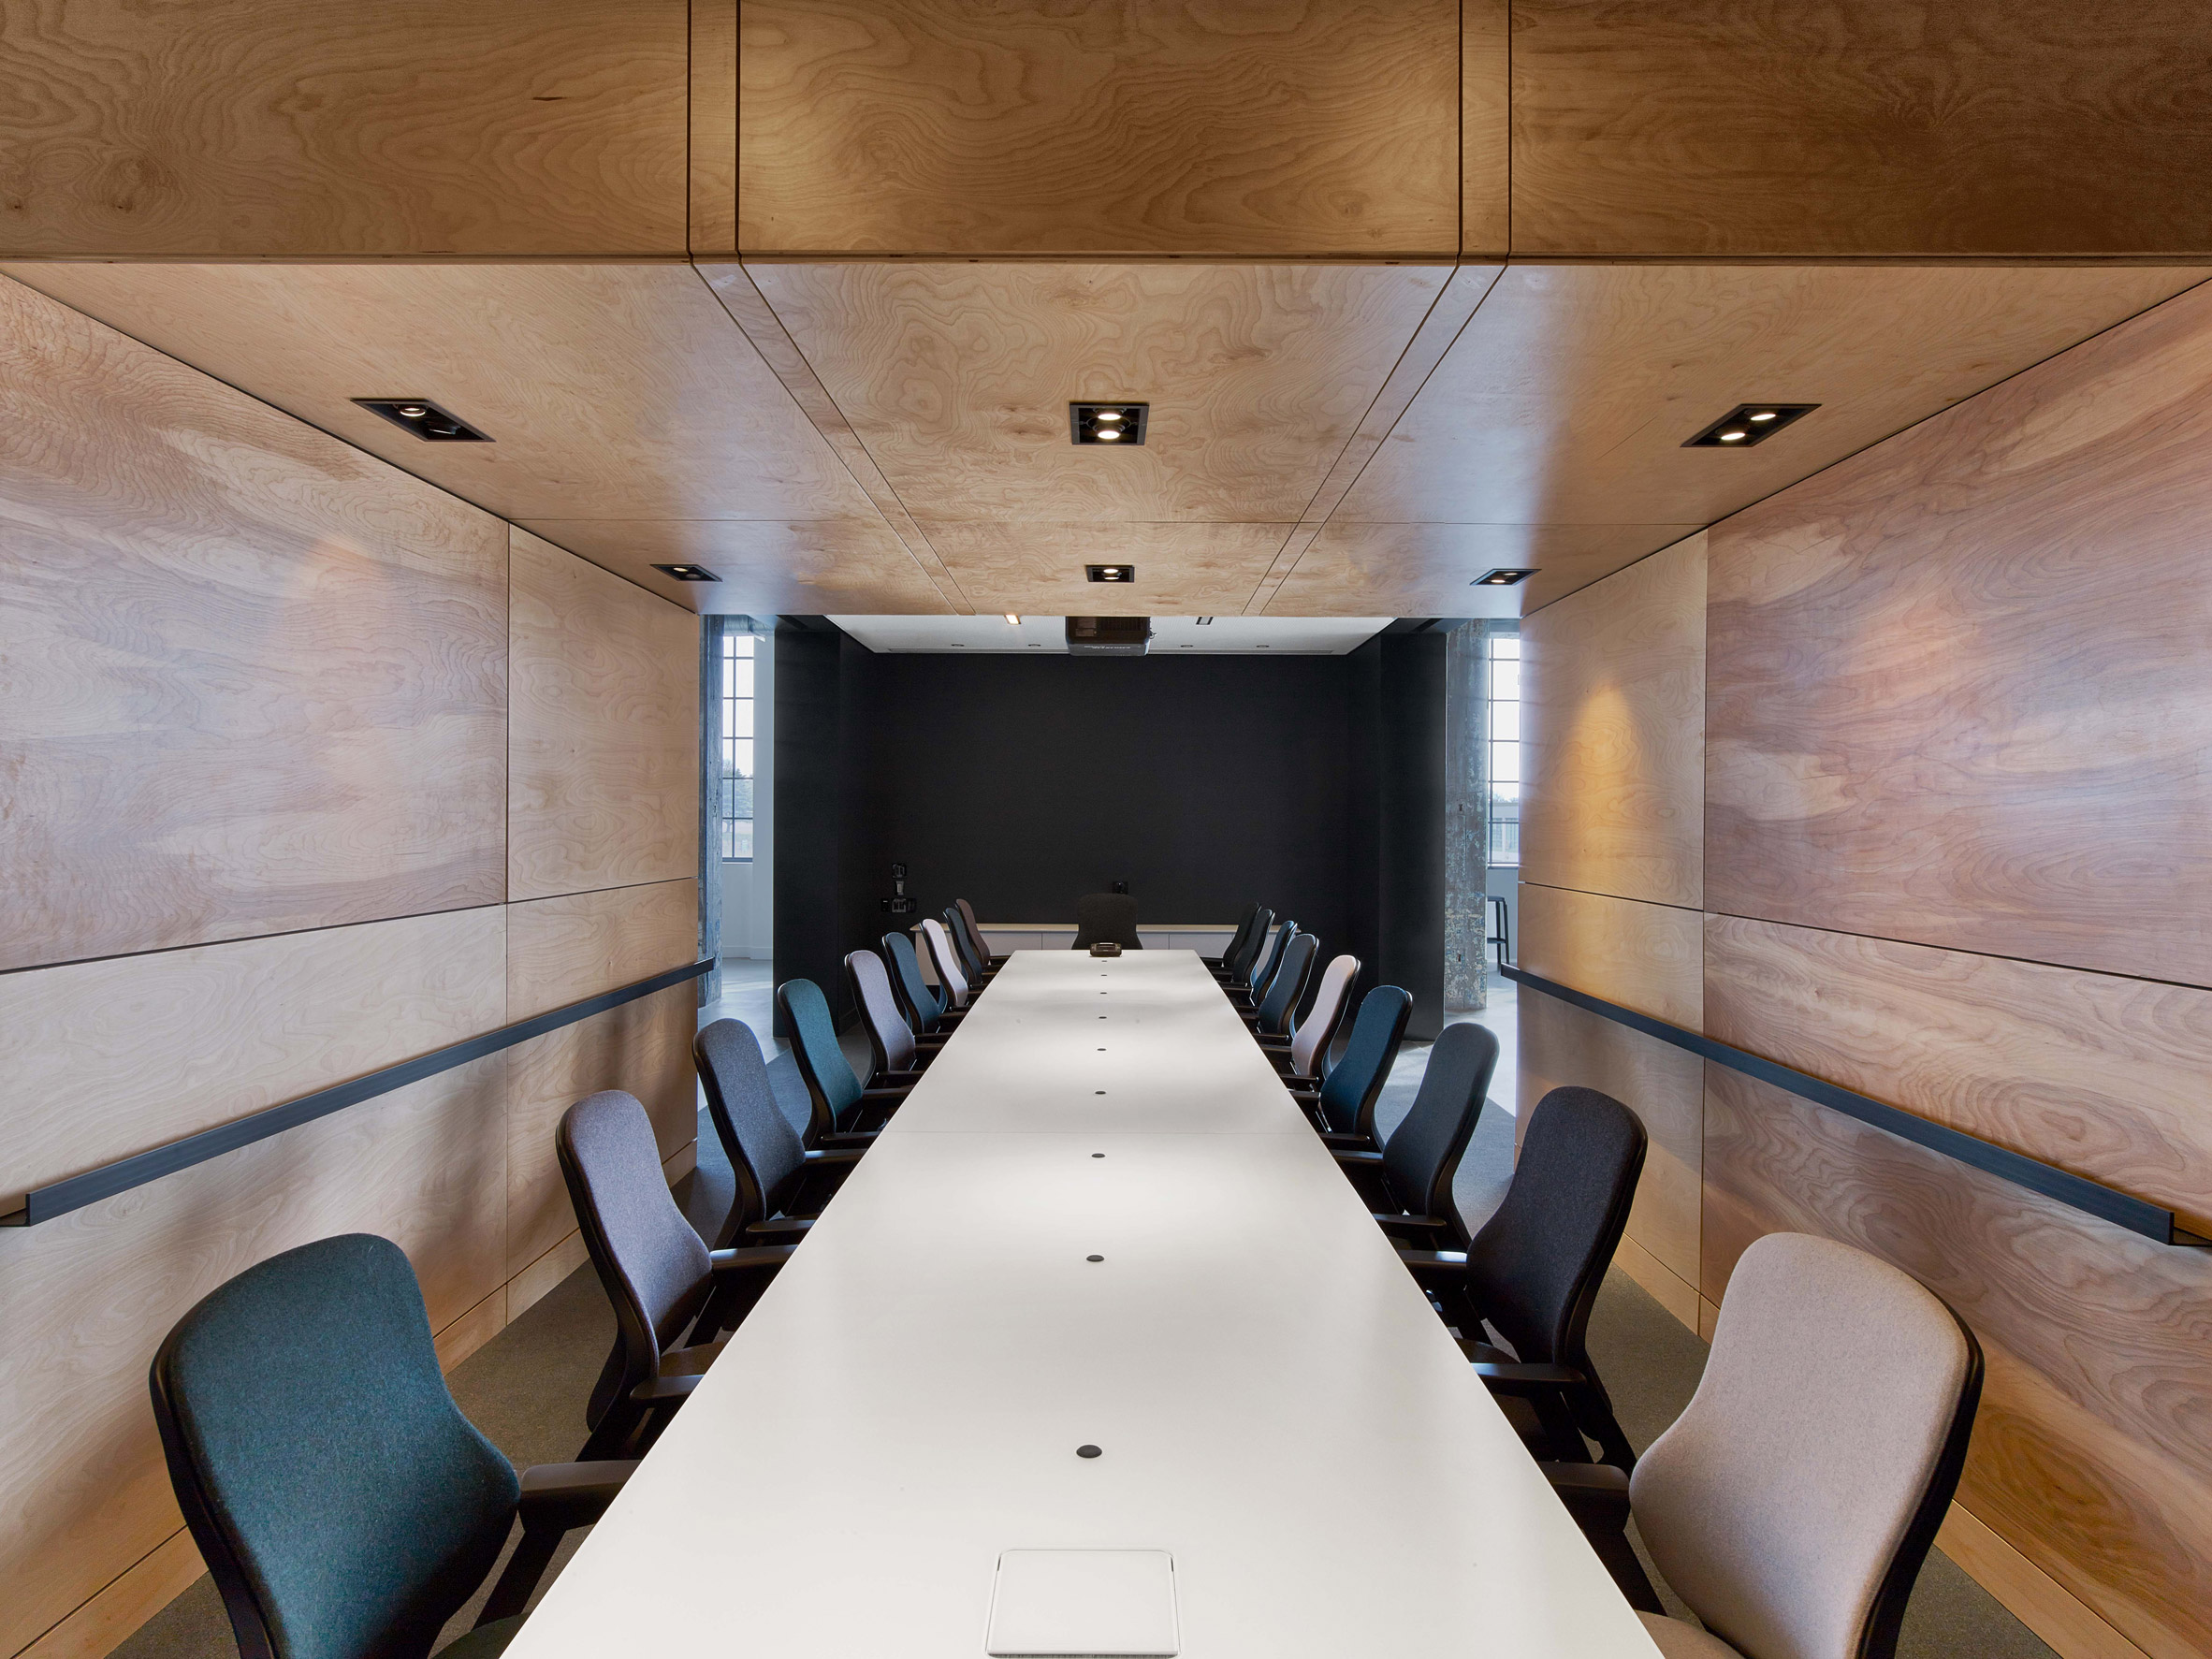 mullen-lowe-offices-tpg-architecture-interiors-north-carolina-usa_dezeen_2364_col_28.jpg